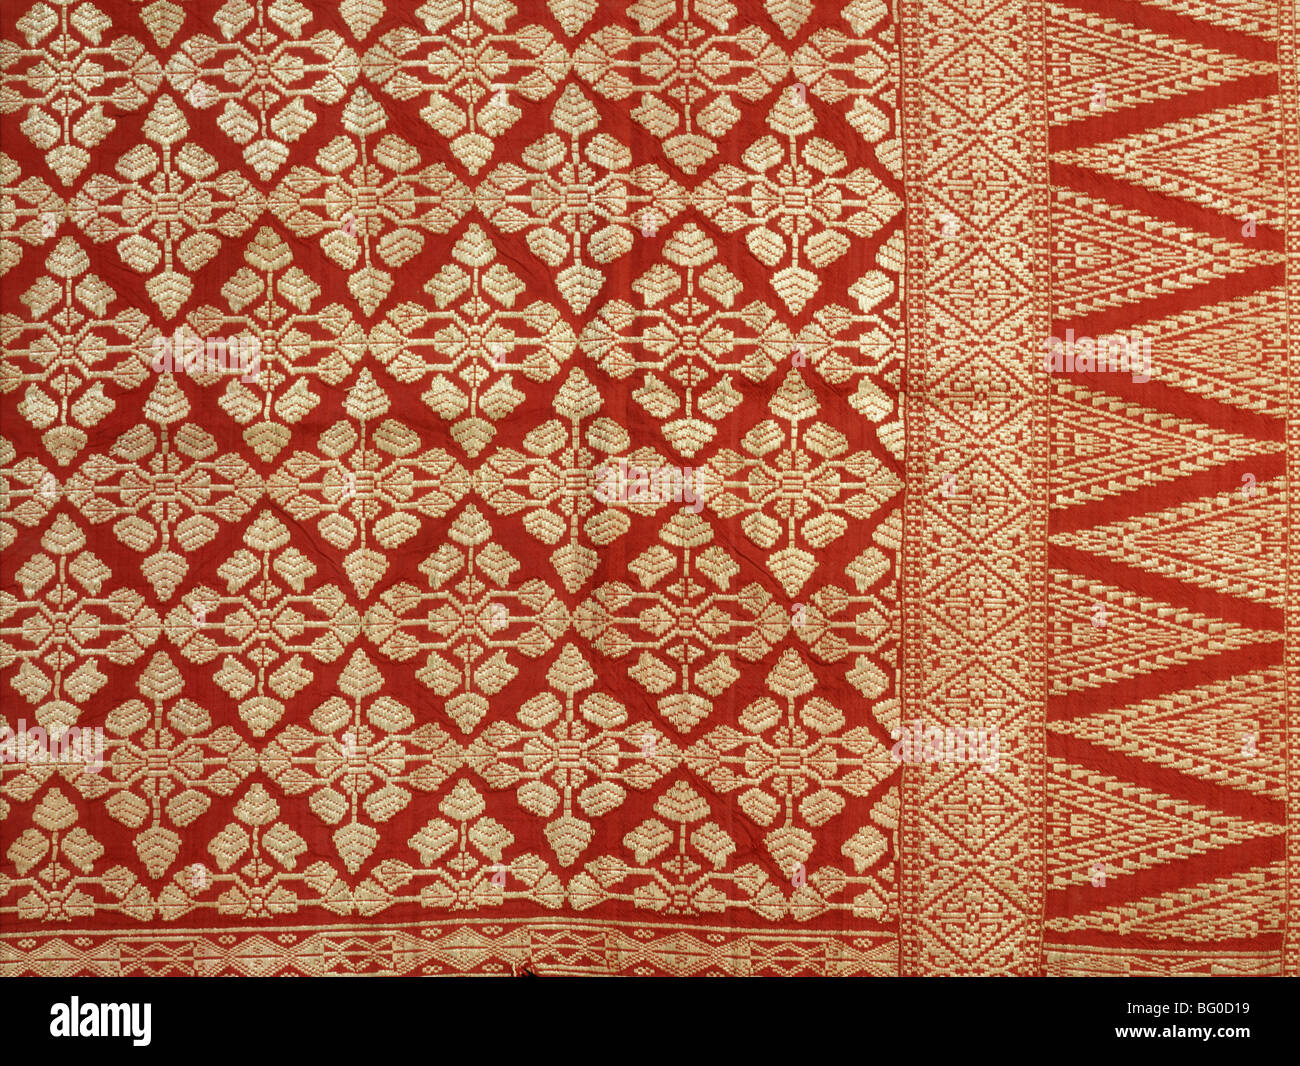 Gold-thread emboidered de textiles de la Malaisie, de l'Asie du Sud, Asie Photo Stock